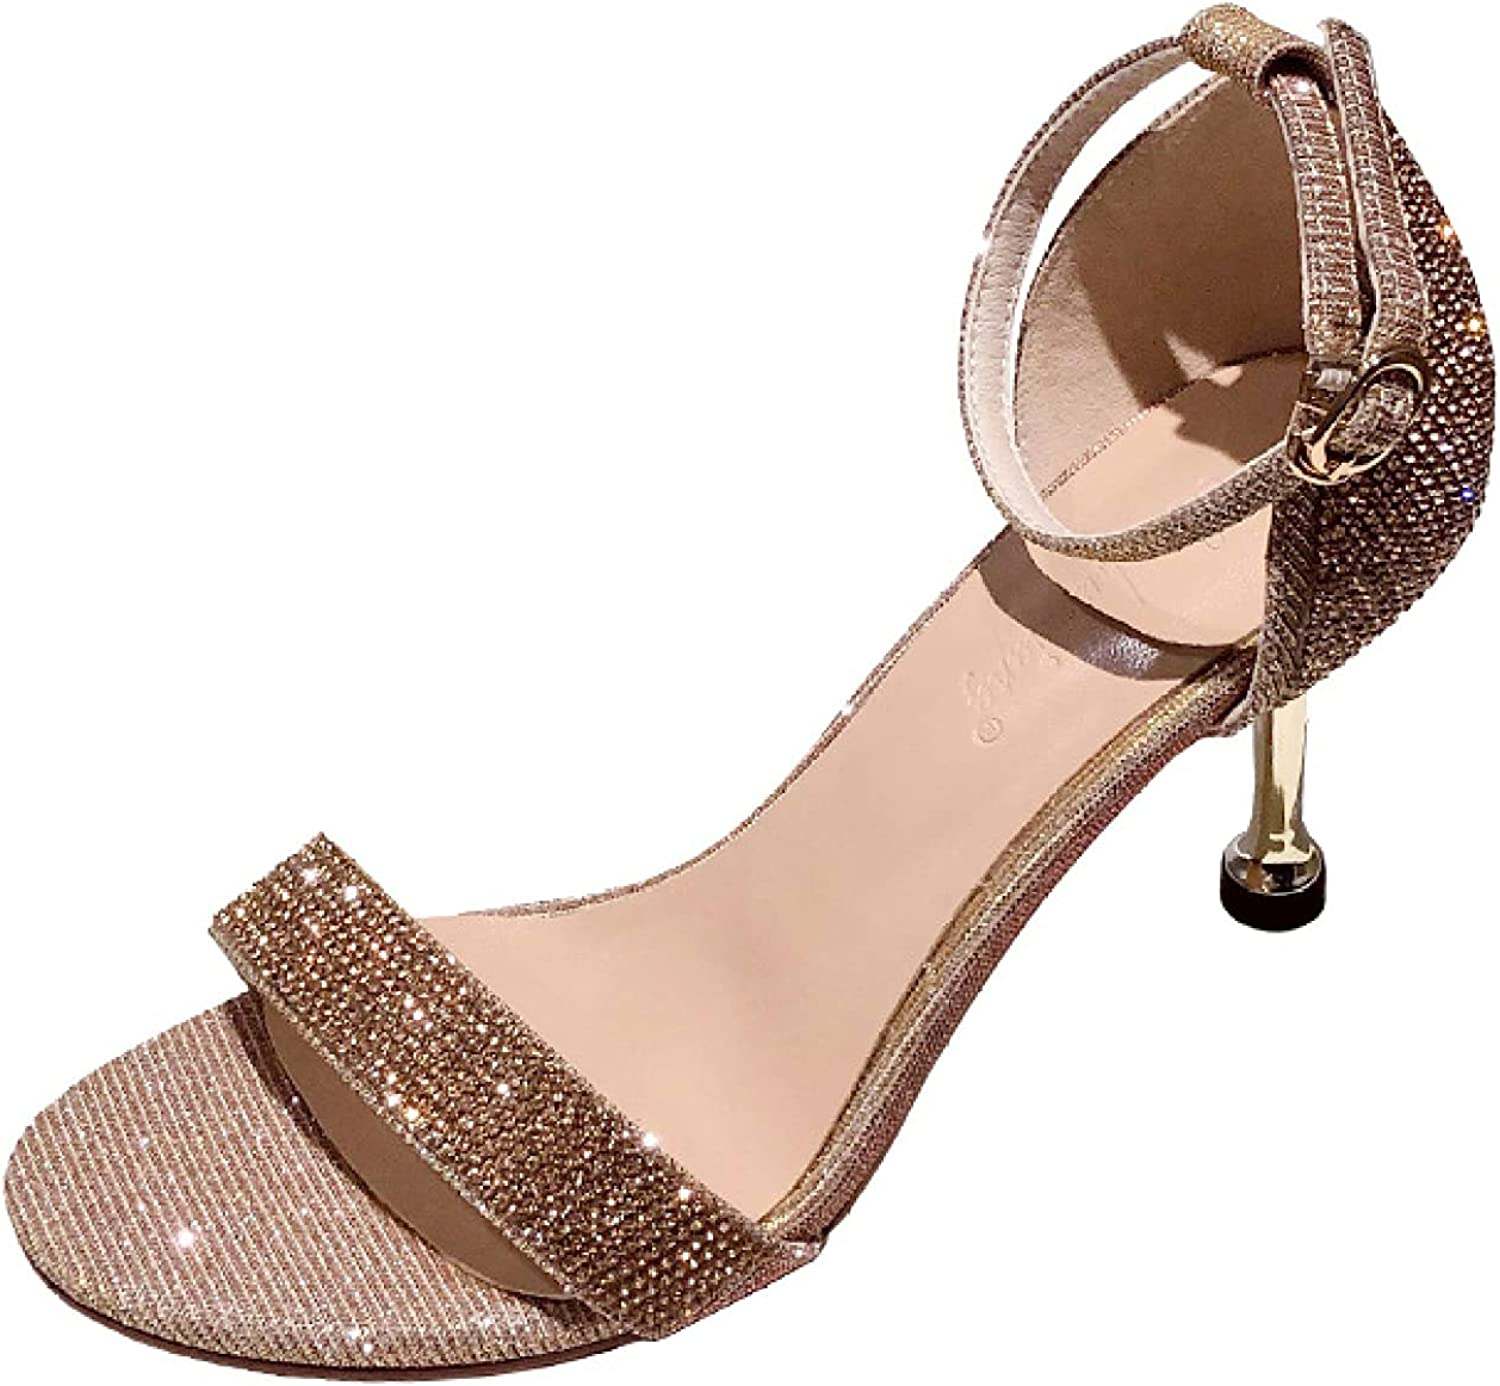 Woman's Elegant Animer and price revision Open Toe Stiletto He Super sale period limited High Strappy Sandals Heeled